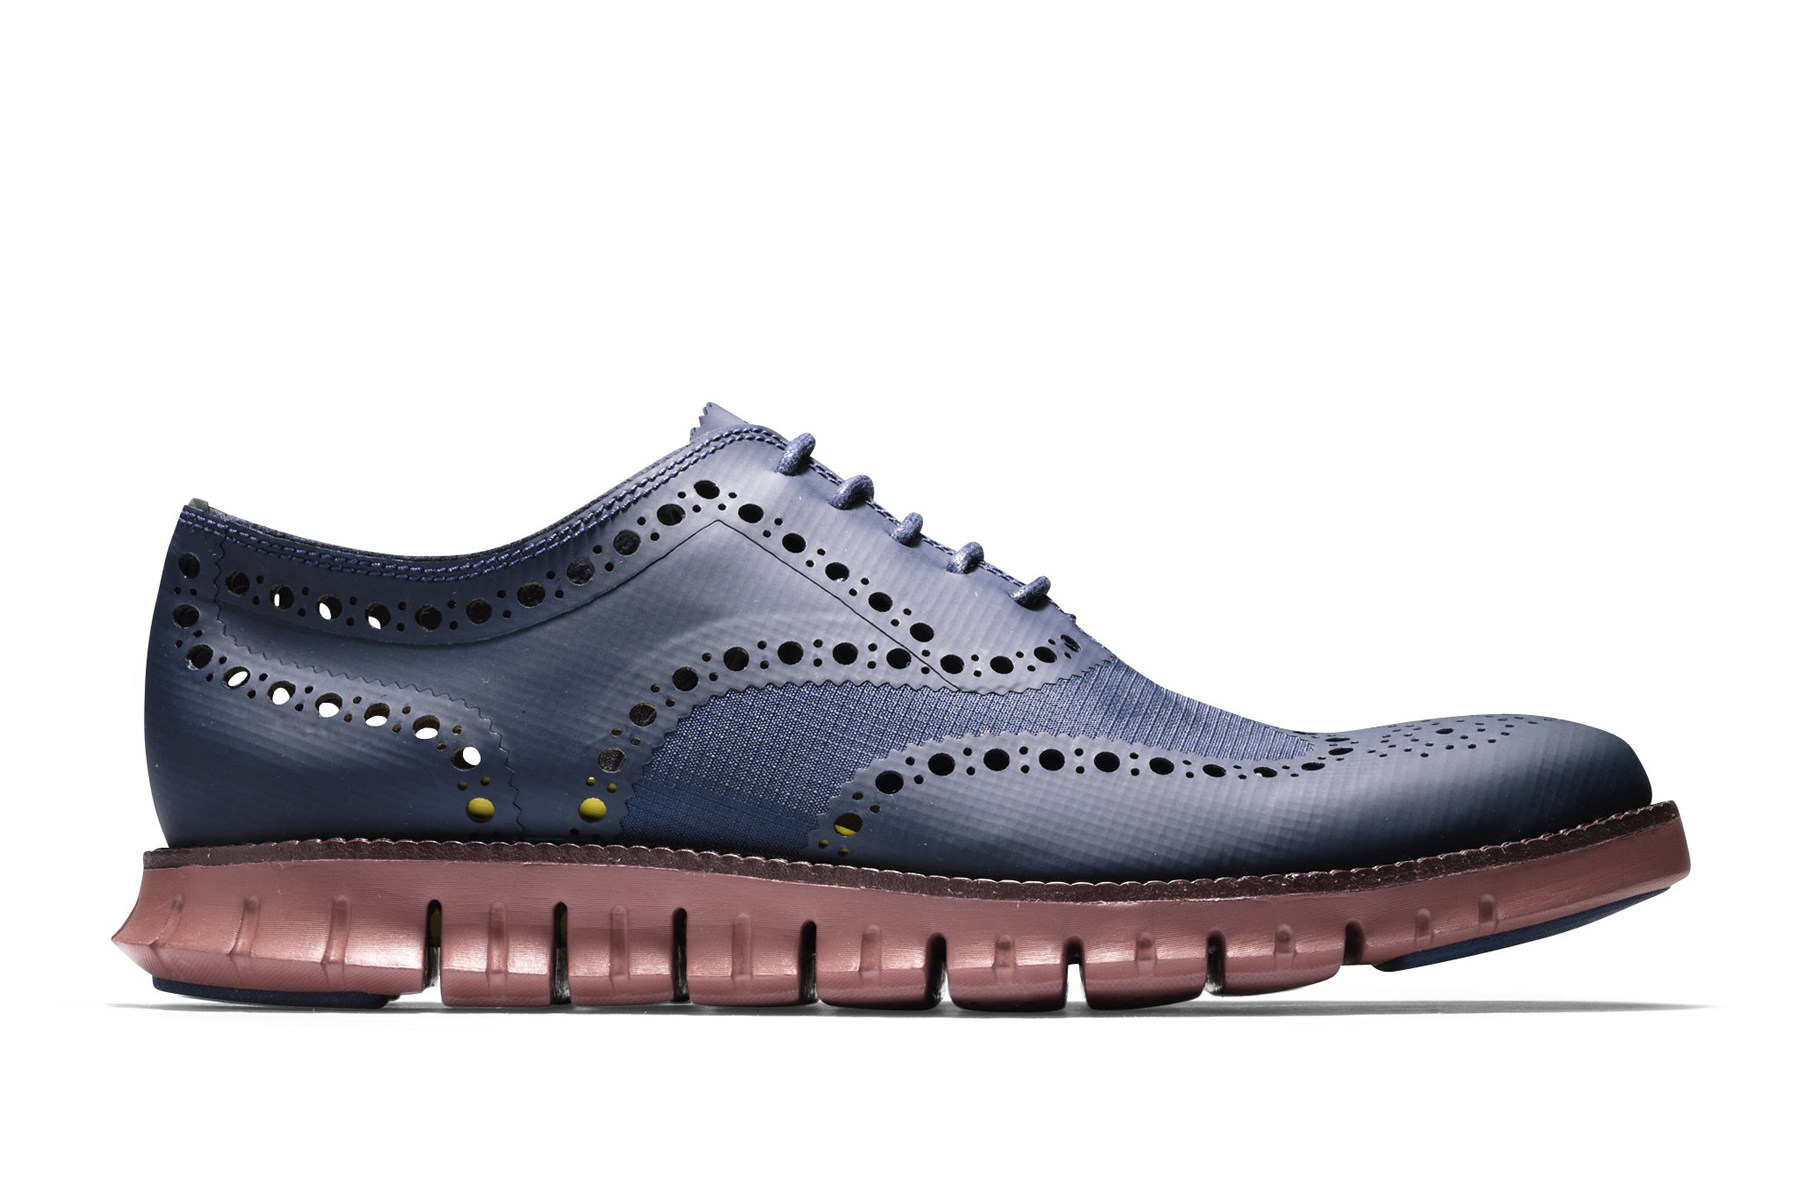 Cole Haan x Nike x Tom Sachs Mission Control Shoes   Cole haan, Dapper dan  and Style men